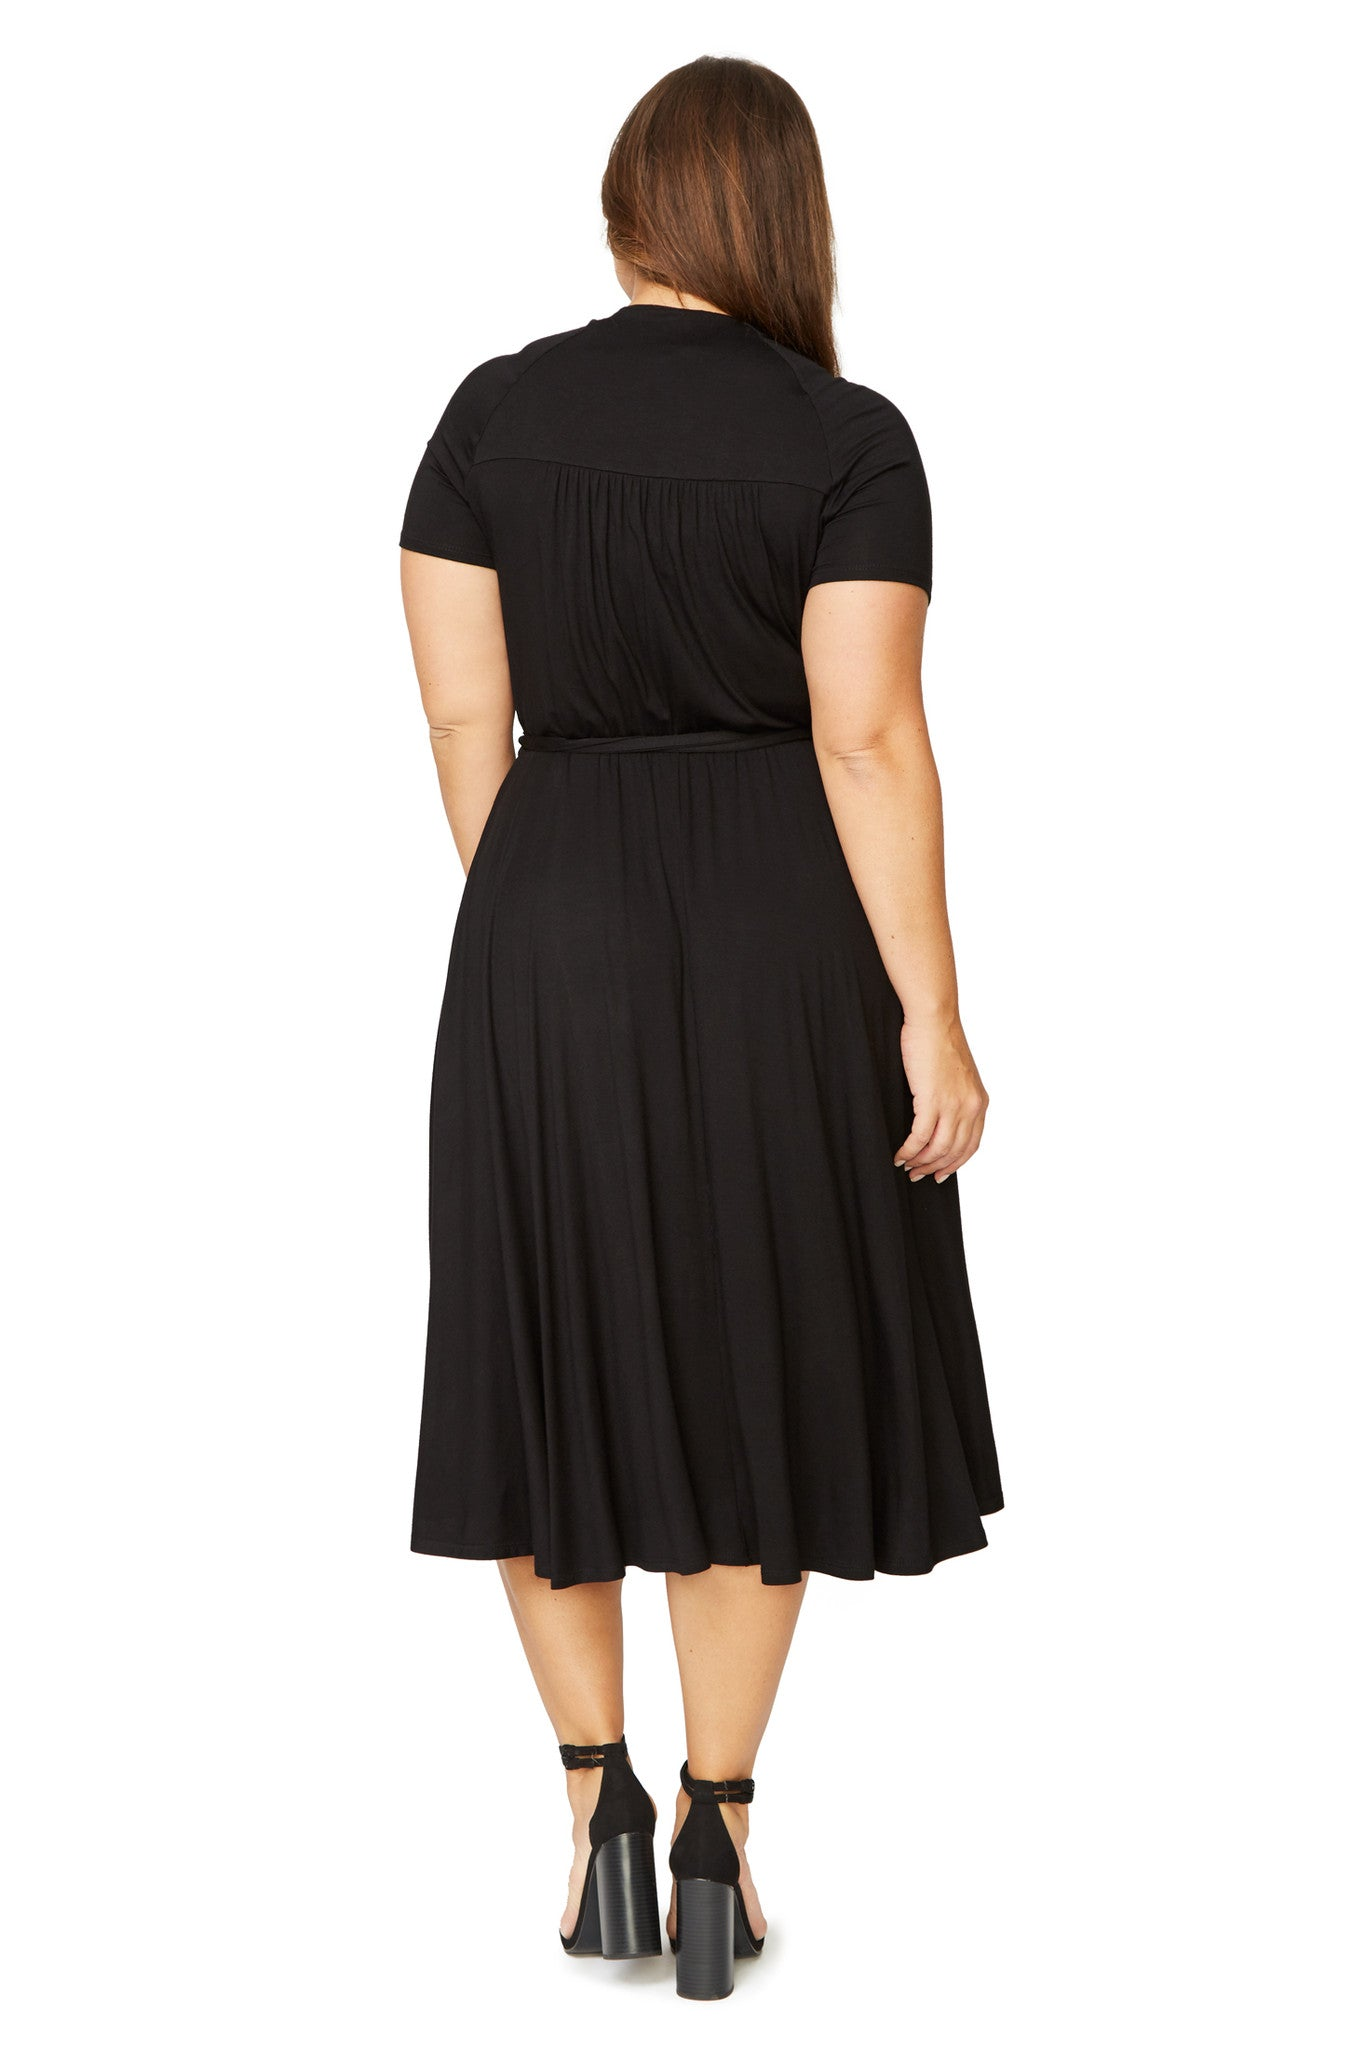 Short Sleeve Cookie Dress - Black, Plus Size